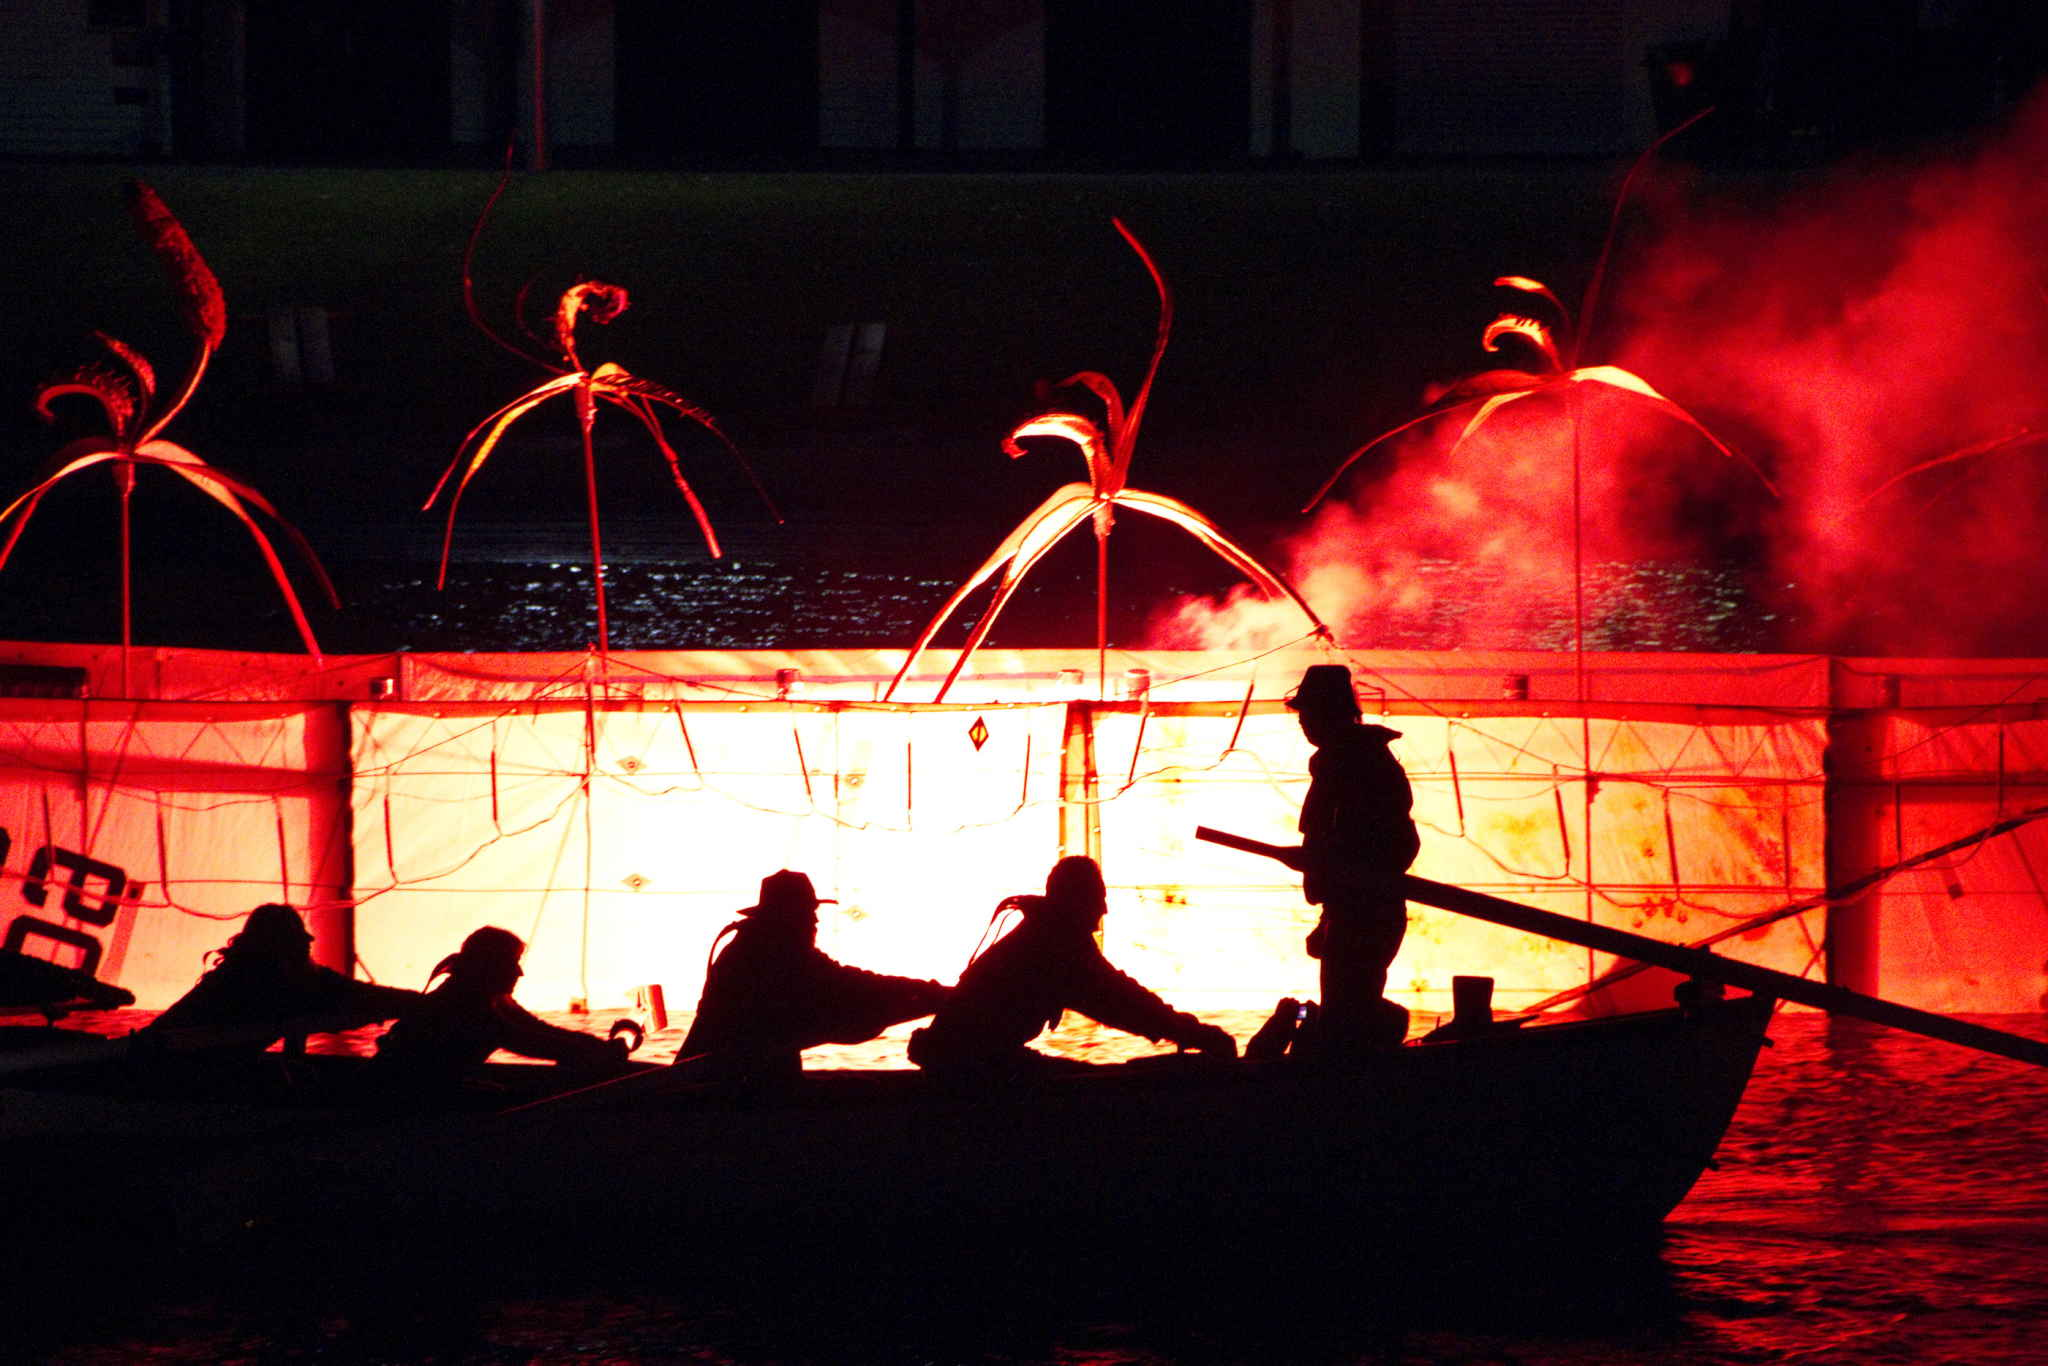 Illuminated by Fire, Federation Square, 2011. Artist: Carmel Wal